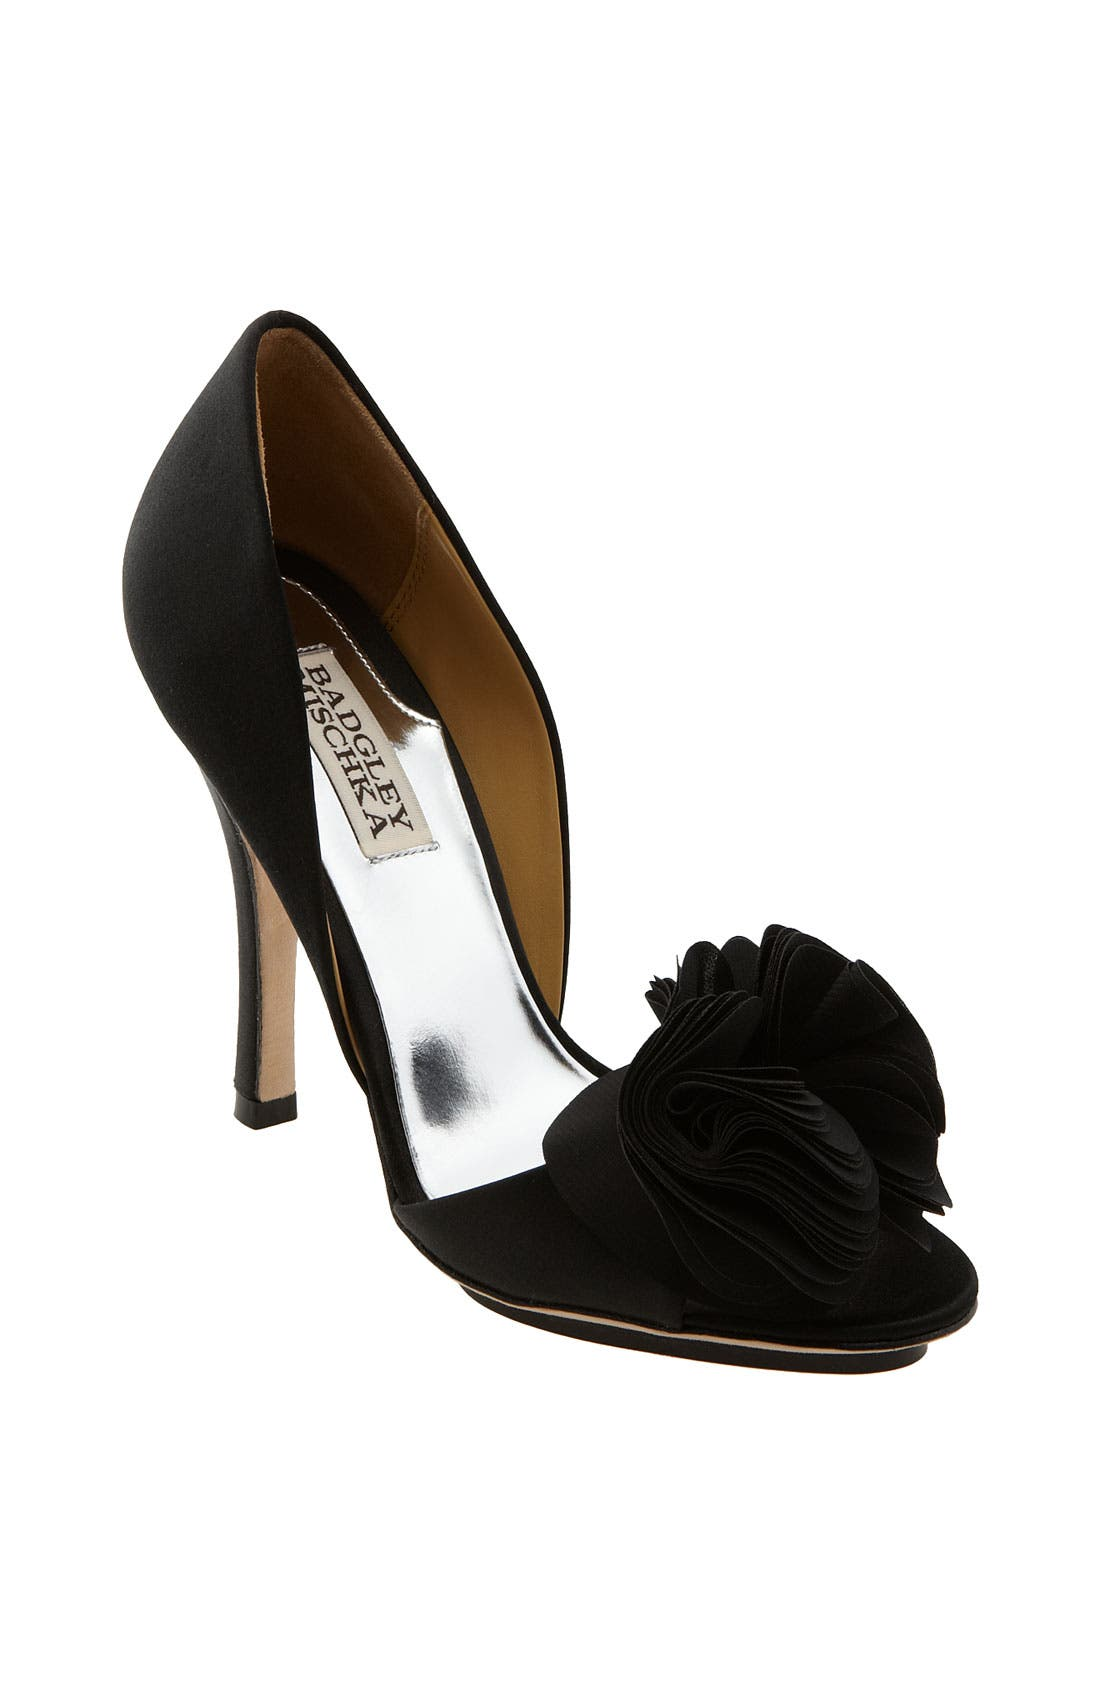 Main Image - Badgley Mischka 'Randall' Pump